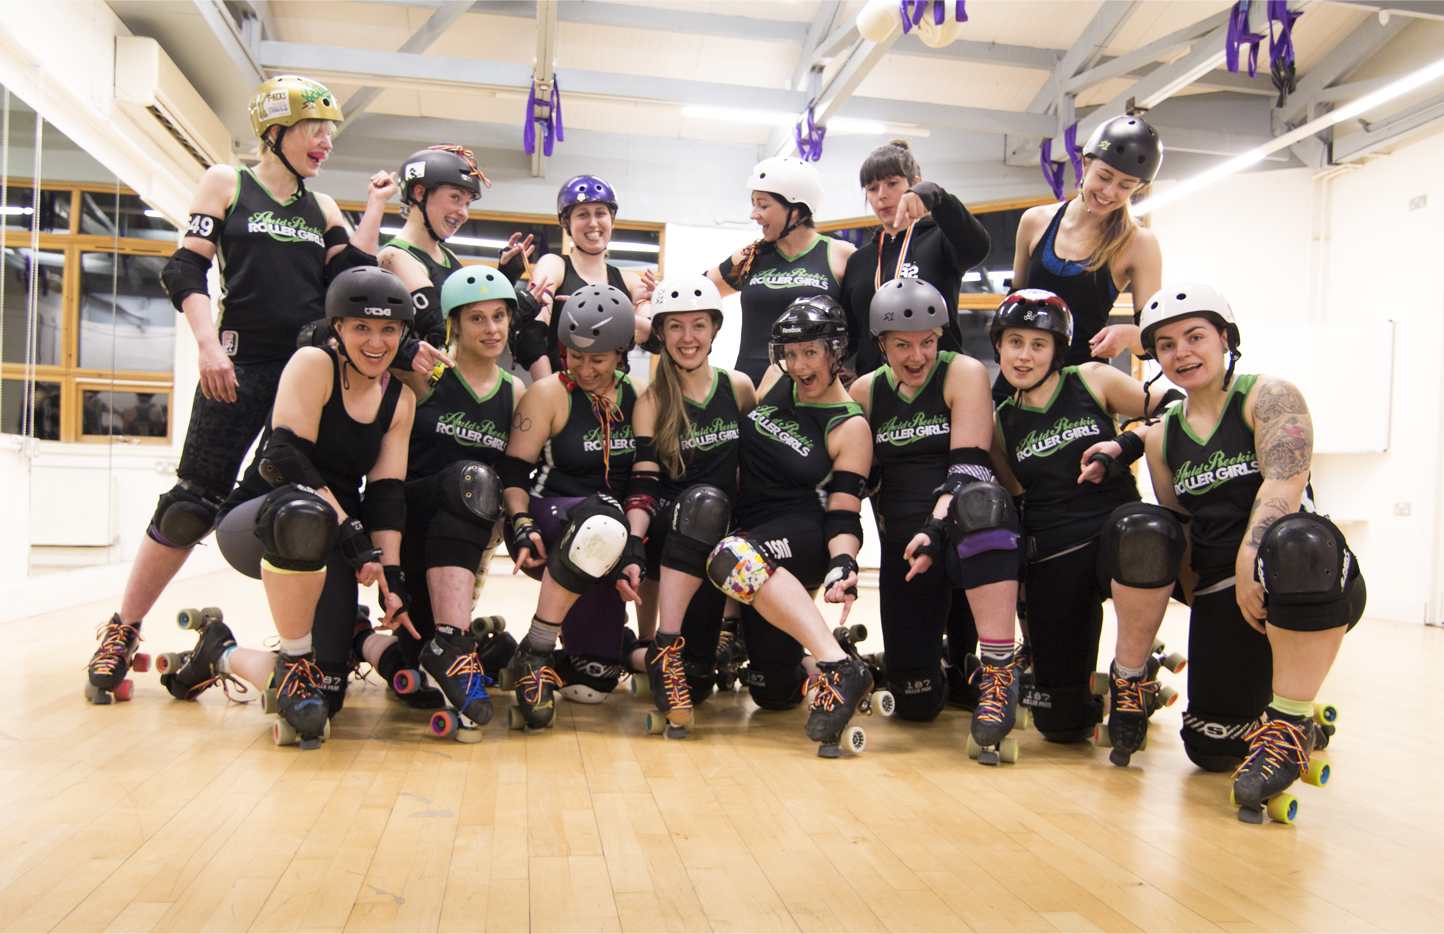 Blog 37: Auld Reekie Roller Girls head Stateside